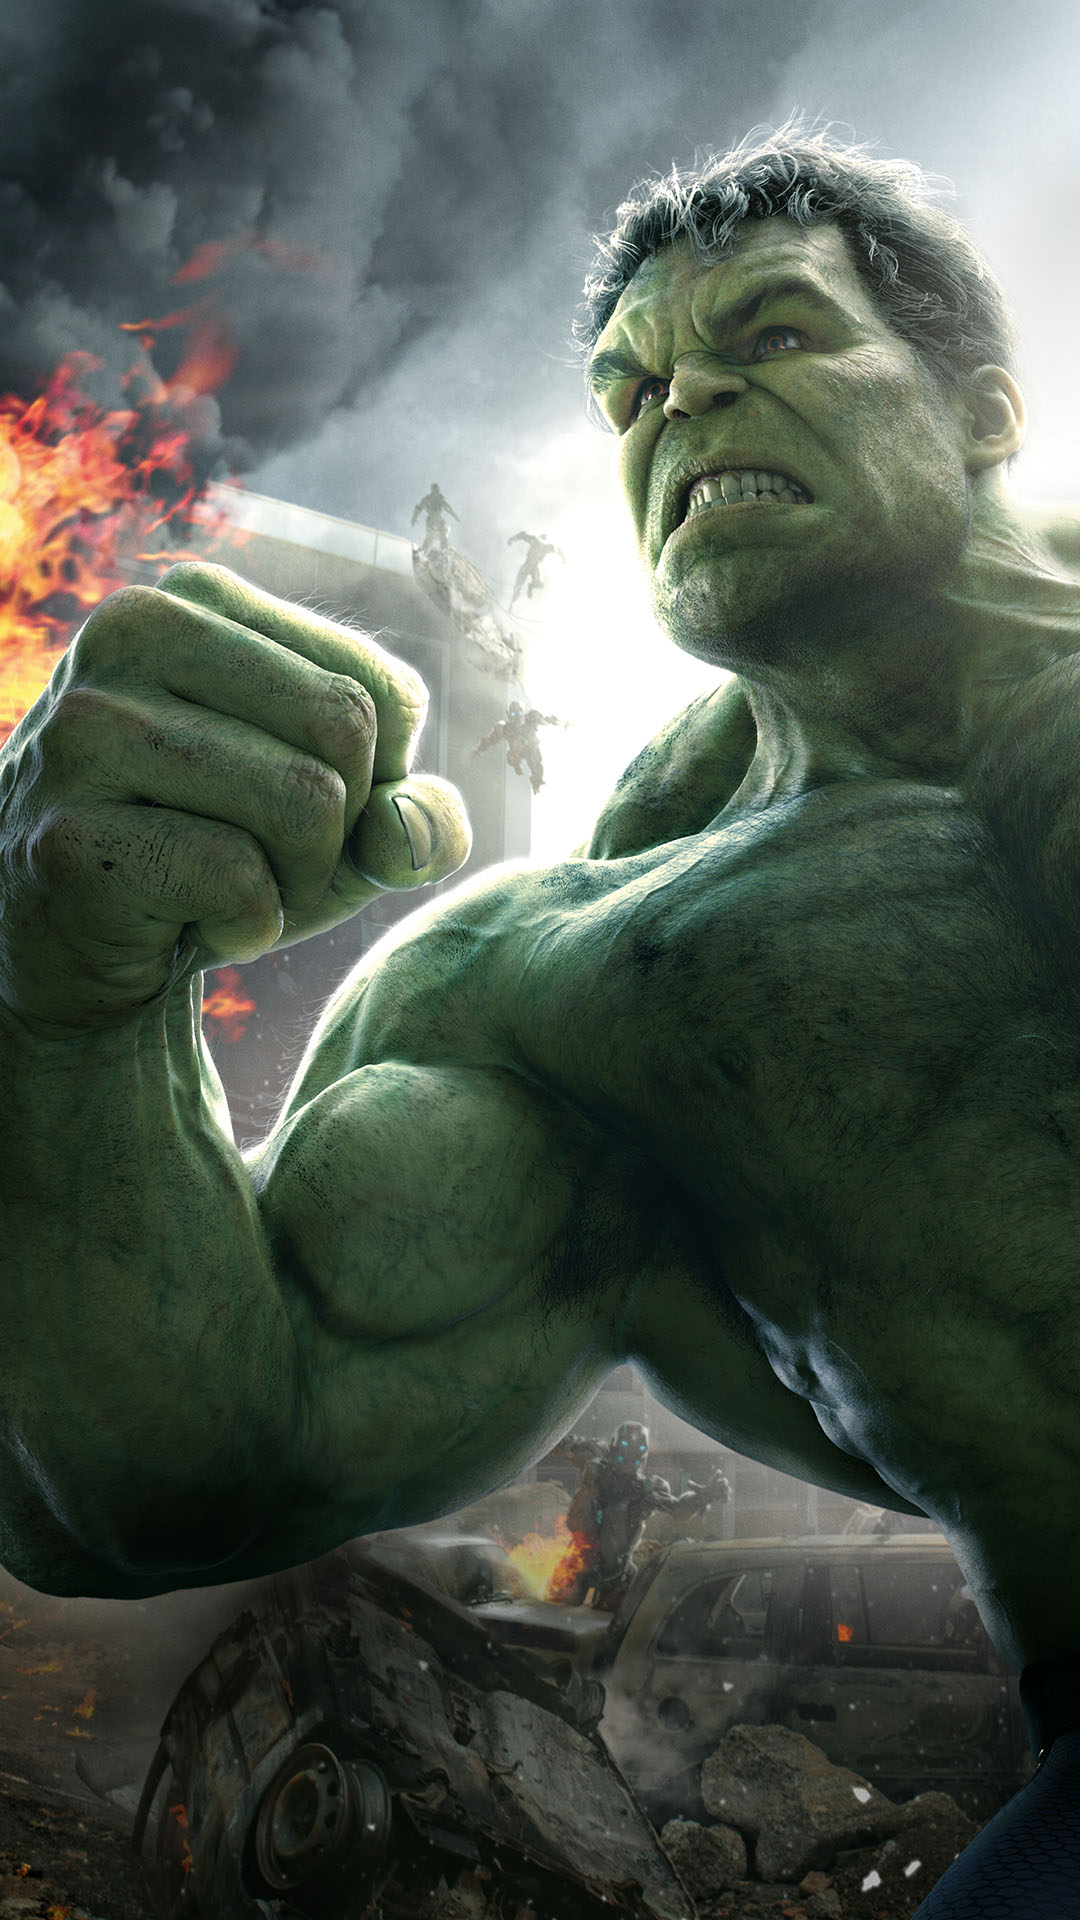 Hulk Mobile Wallpaper